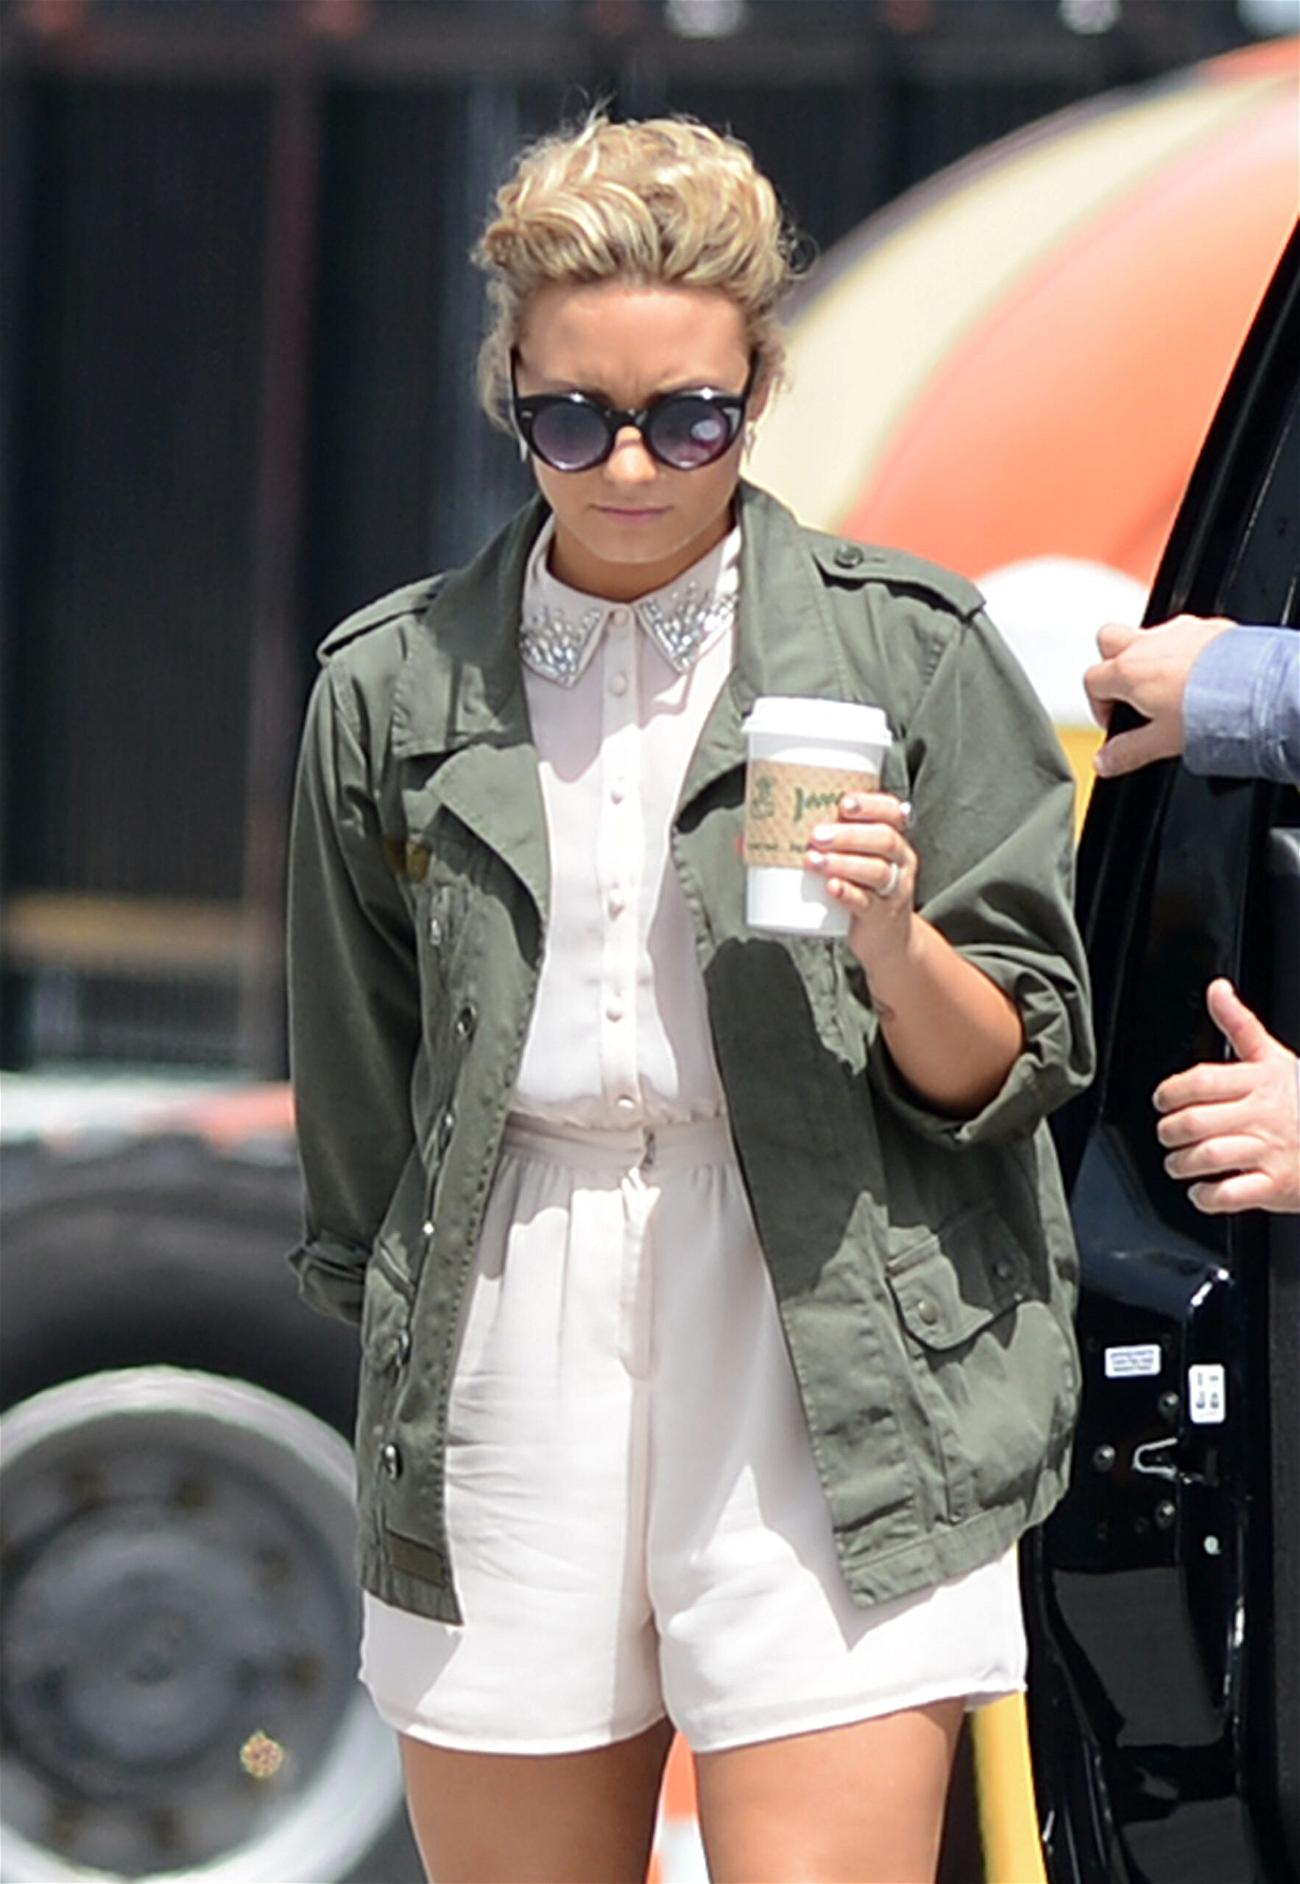 Demi Lovato arrives to the Fillmore Miami Beach for Day 3 taping of The X Factor quot Bootcamp quot in Miami Beach